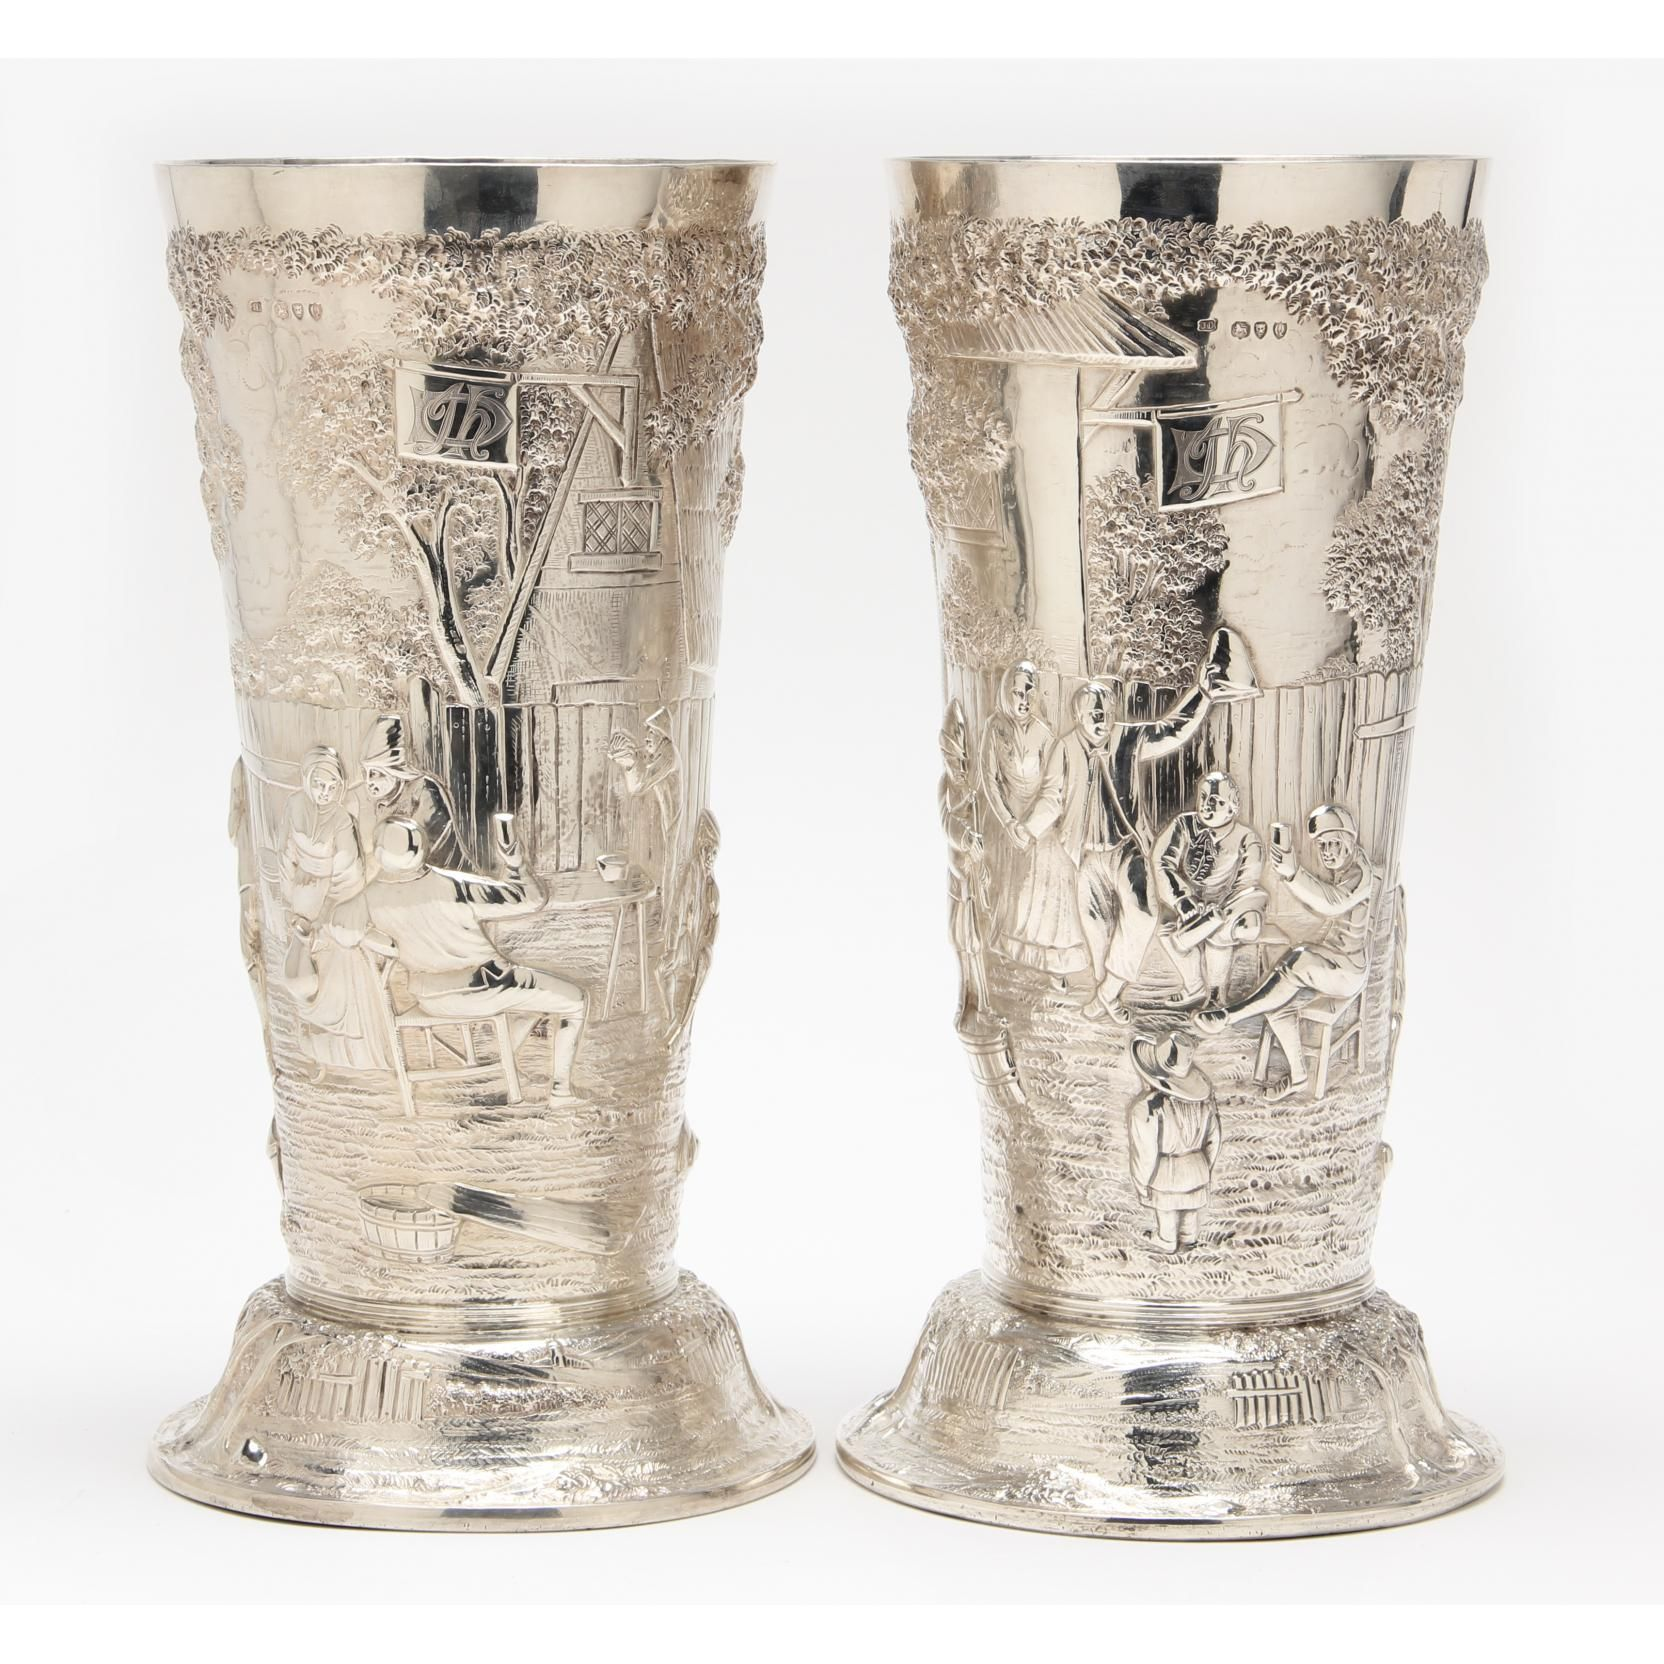 Pair of Victorian Large Silver Vases Sold $4,600